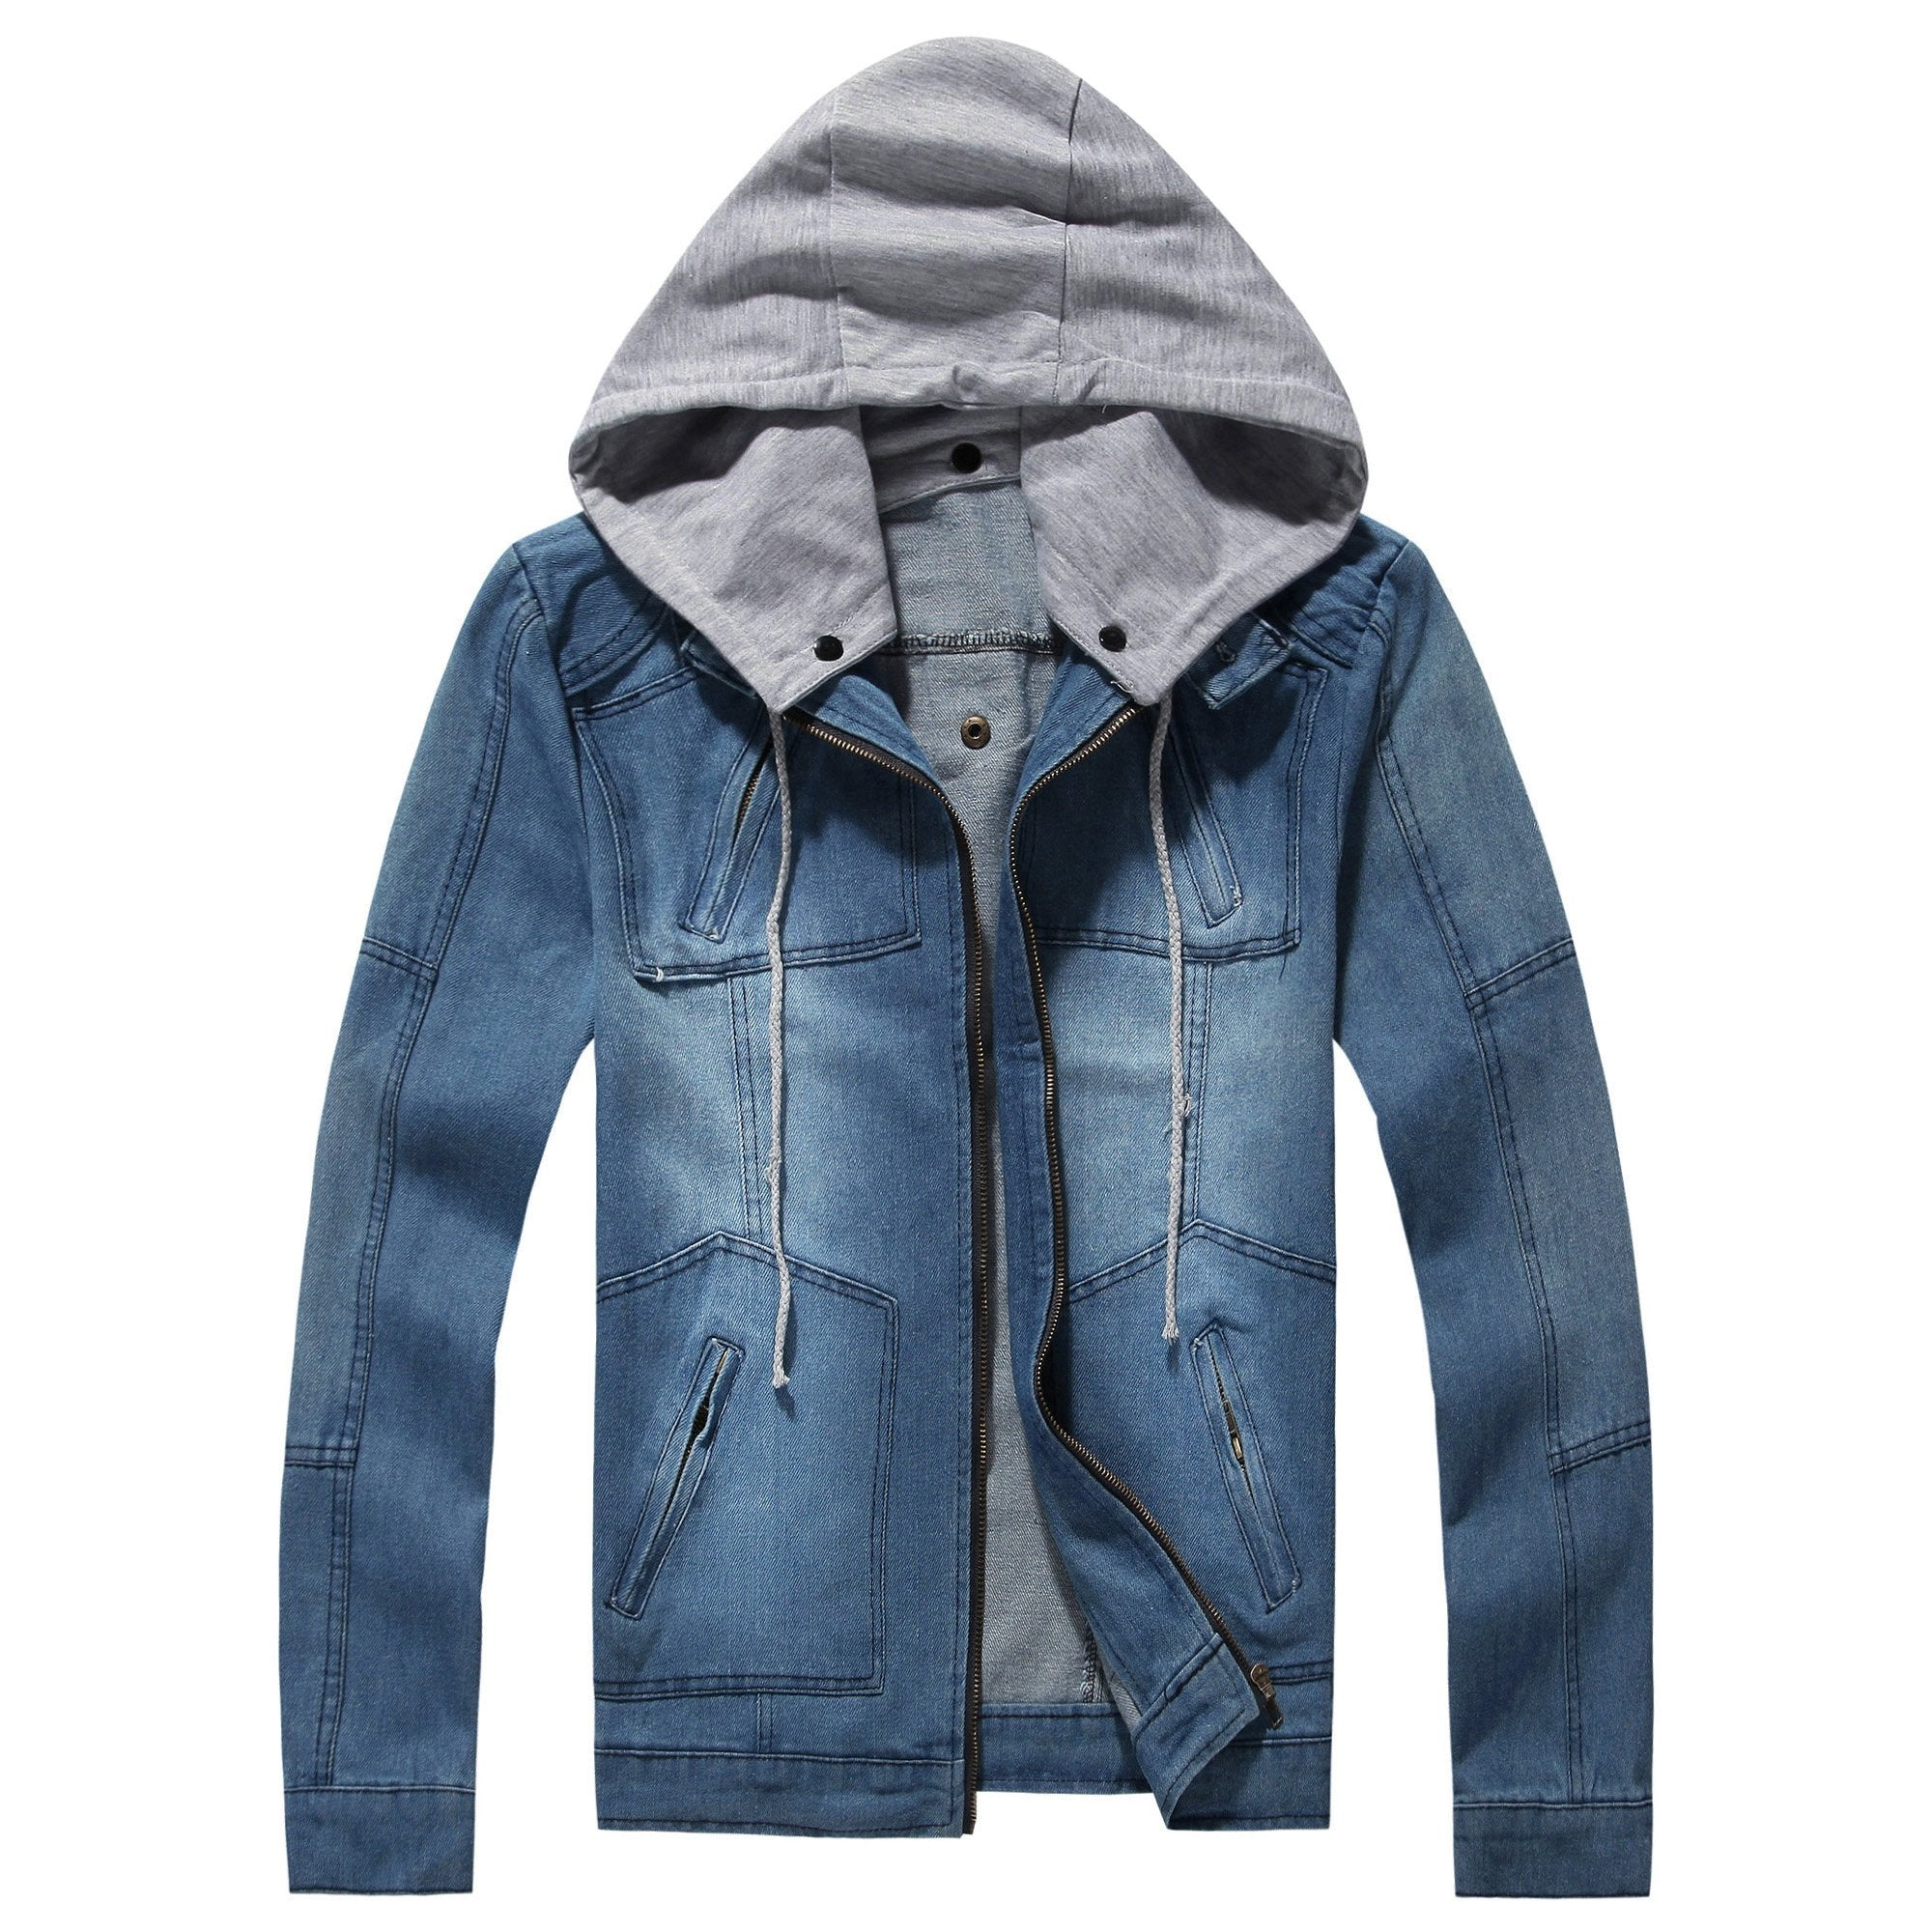 Plus Size Men's Spring Autumn Clothing Hooded denim Zipper Jacket Jacket Hatliilgal-liilgal